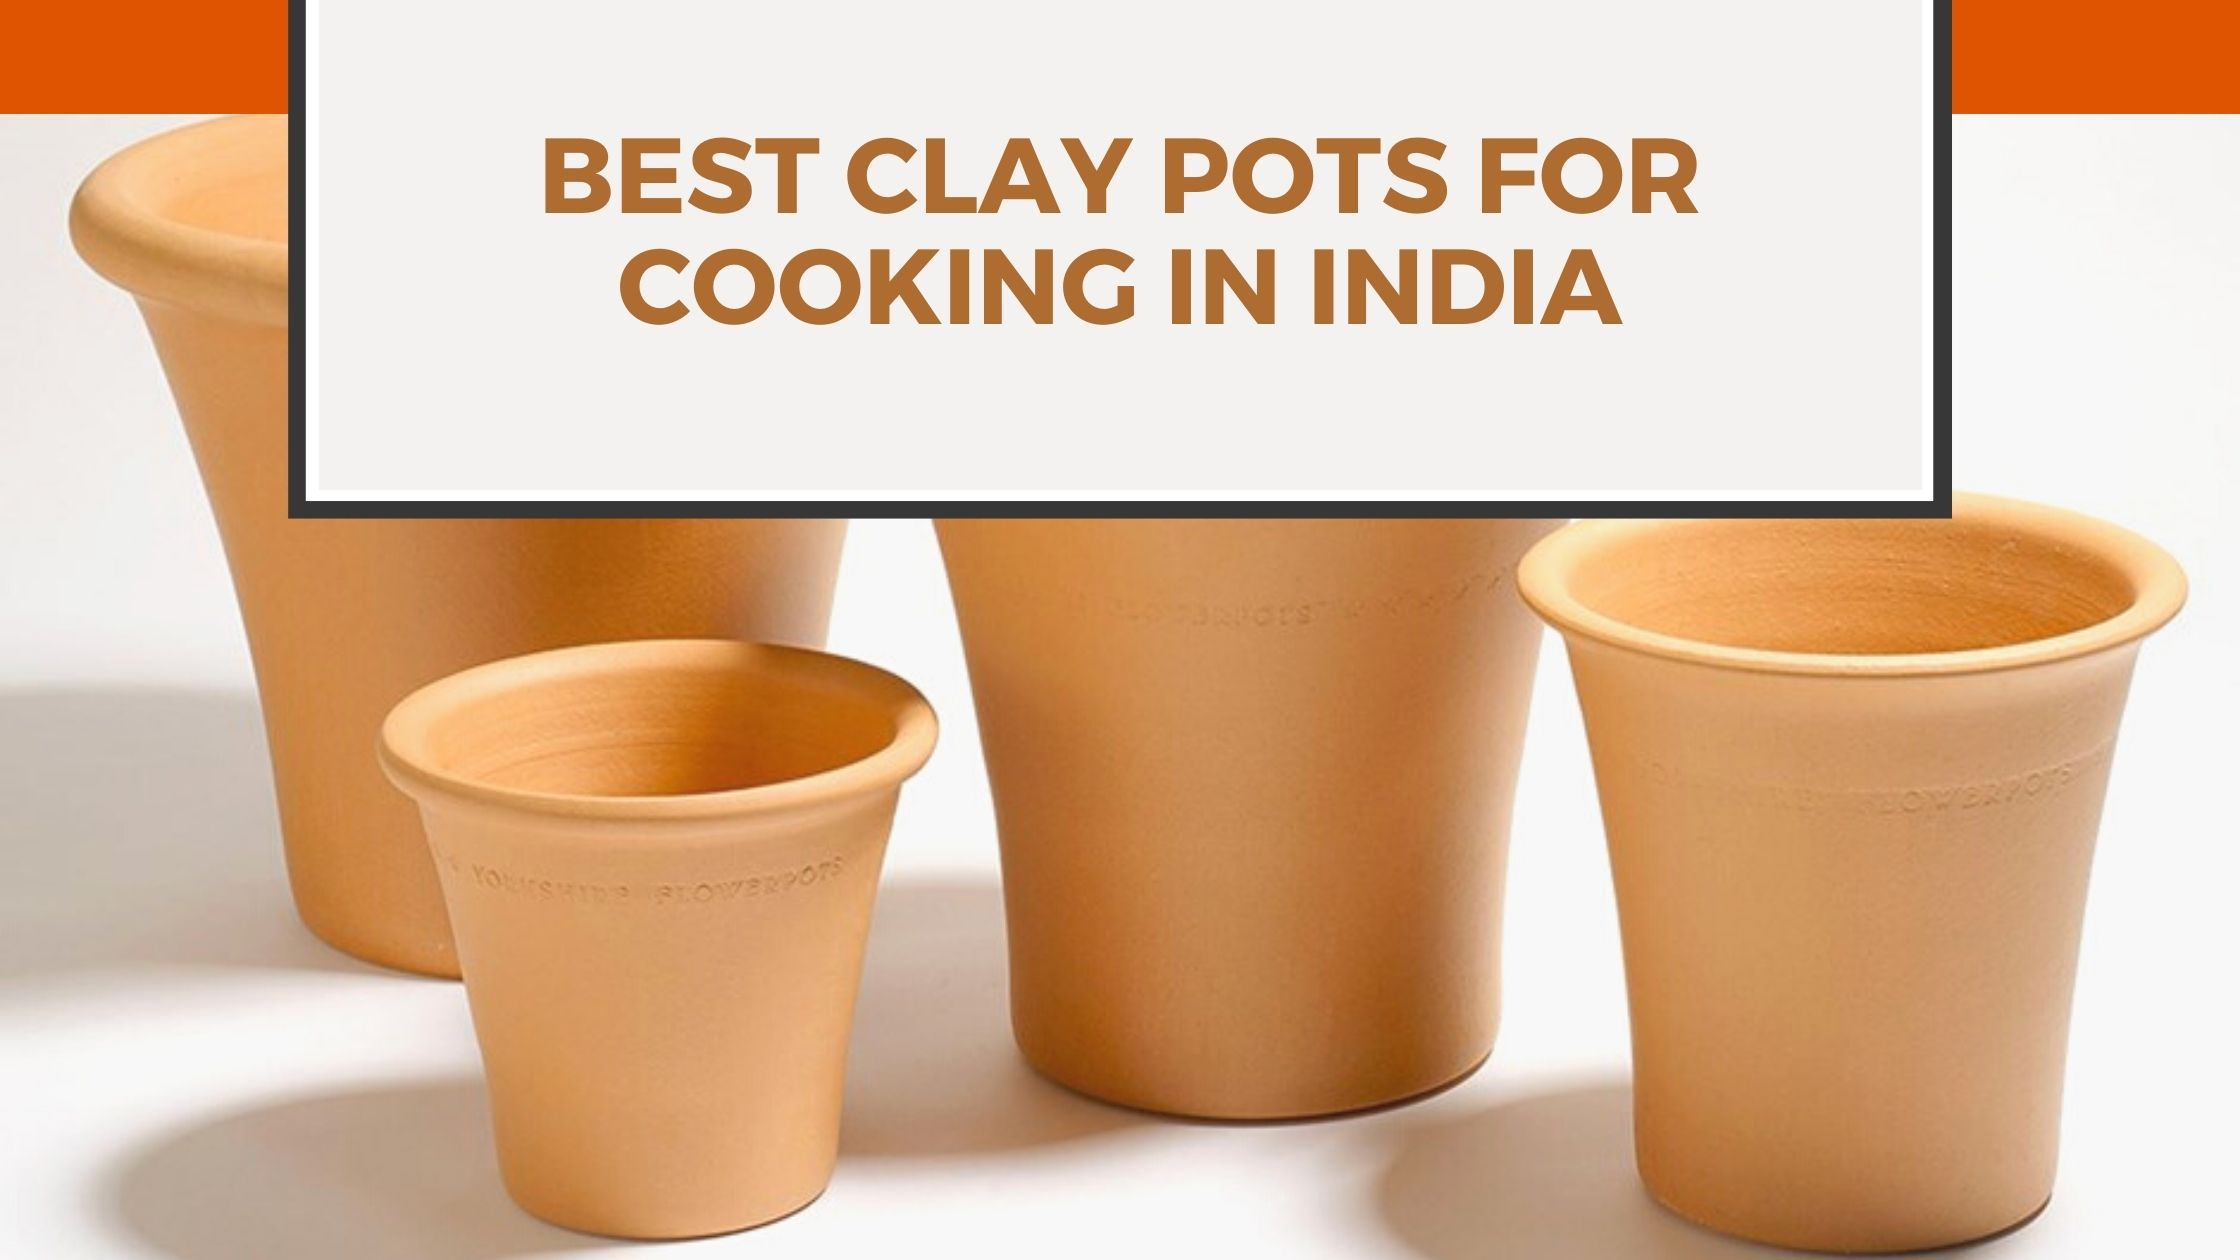 Best Clay Pots for Cooking in INDIA